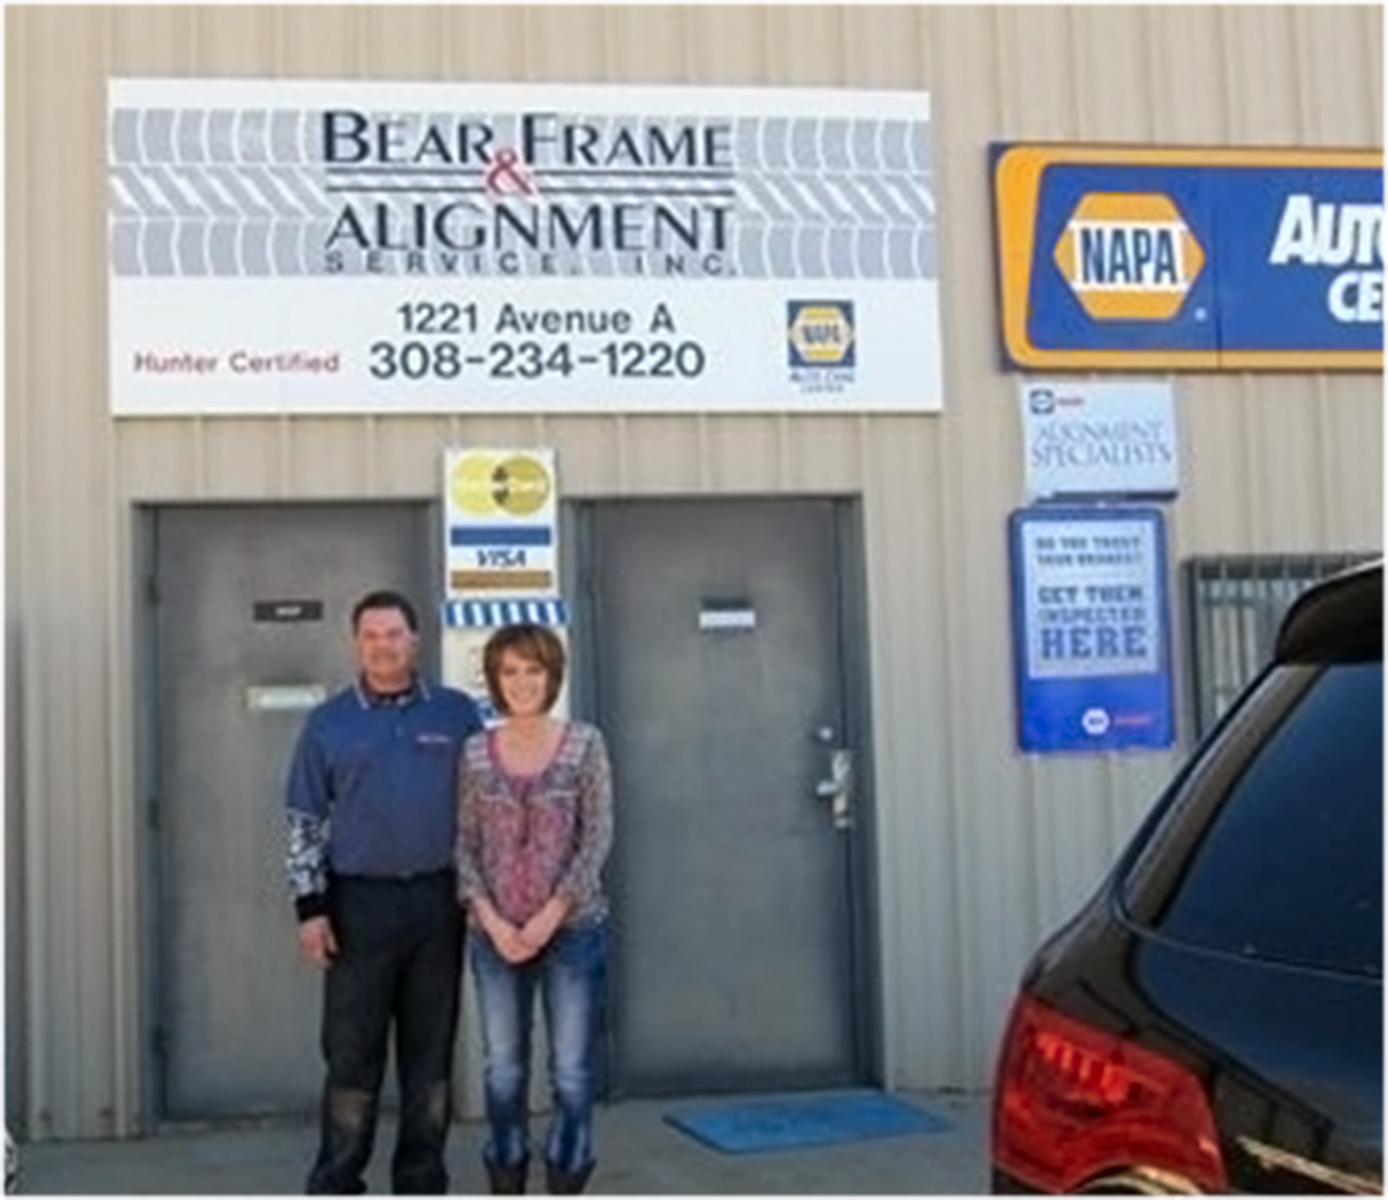 Stan & Michelle Lundgren owners of Bear Frame & Alignment Services, Inc. Kearney, NE